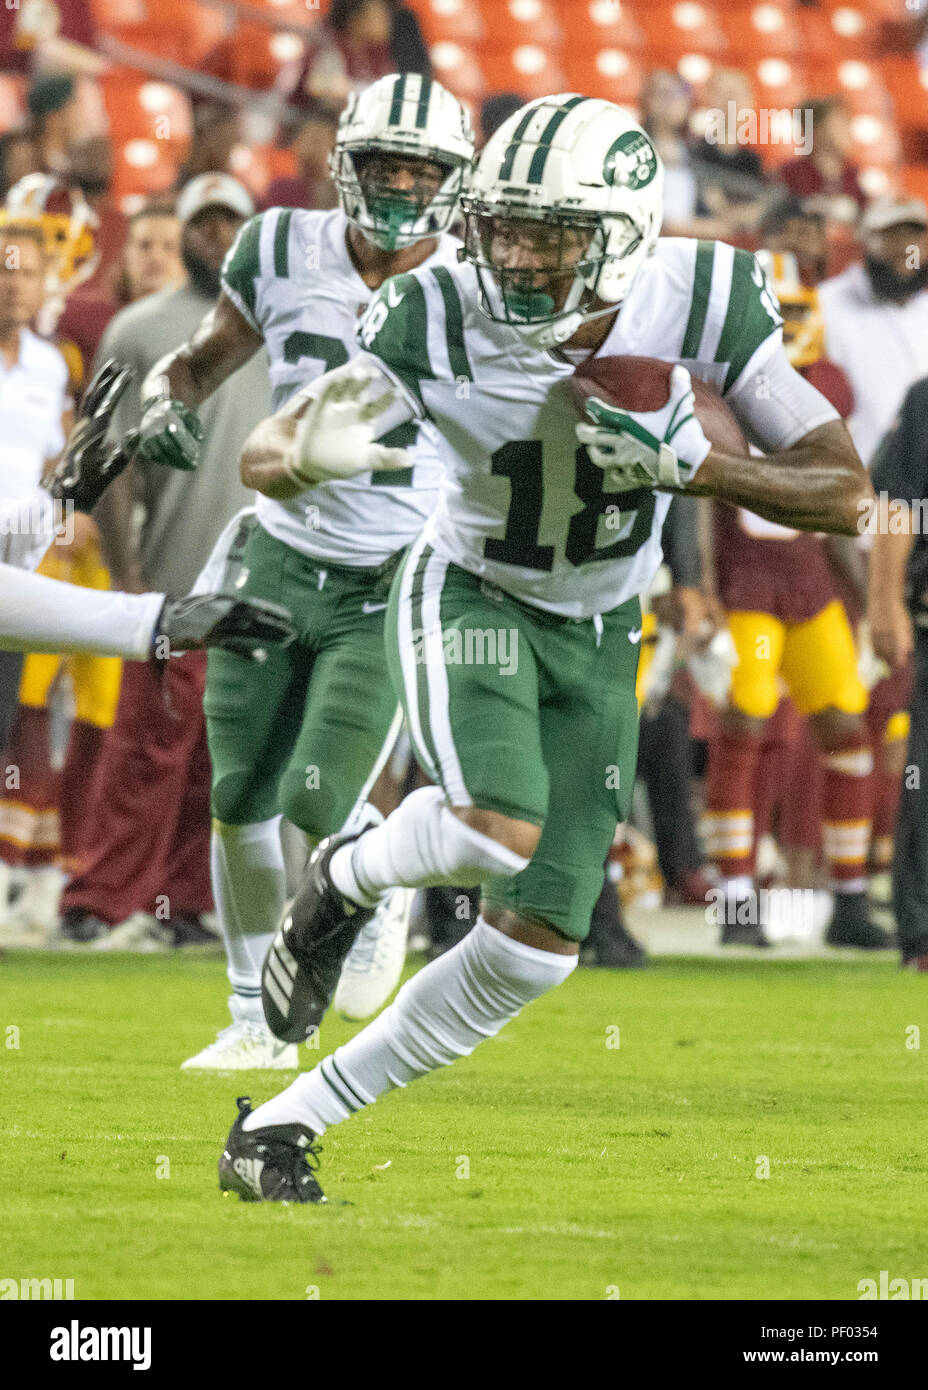 93523c928d4 New York Jets wide receiver ArDarius Stewart (18) carries the ball in the  fourth quarter against the Washington Redskins at FedEx Field in Landover,  ...